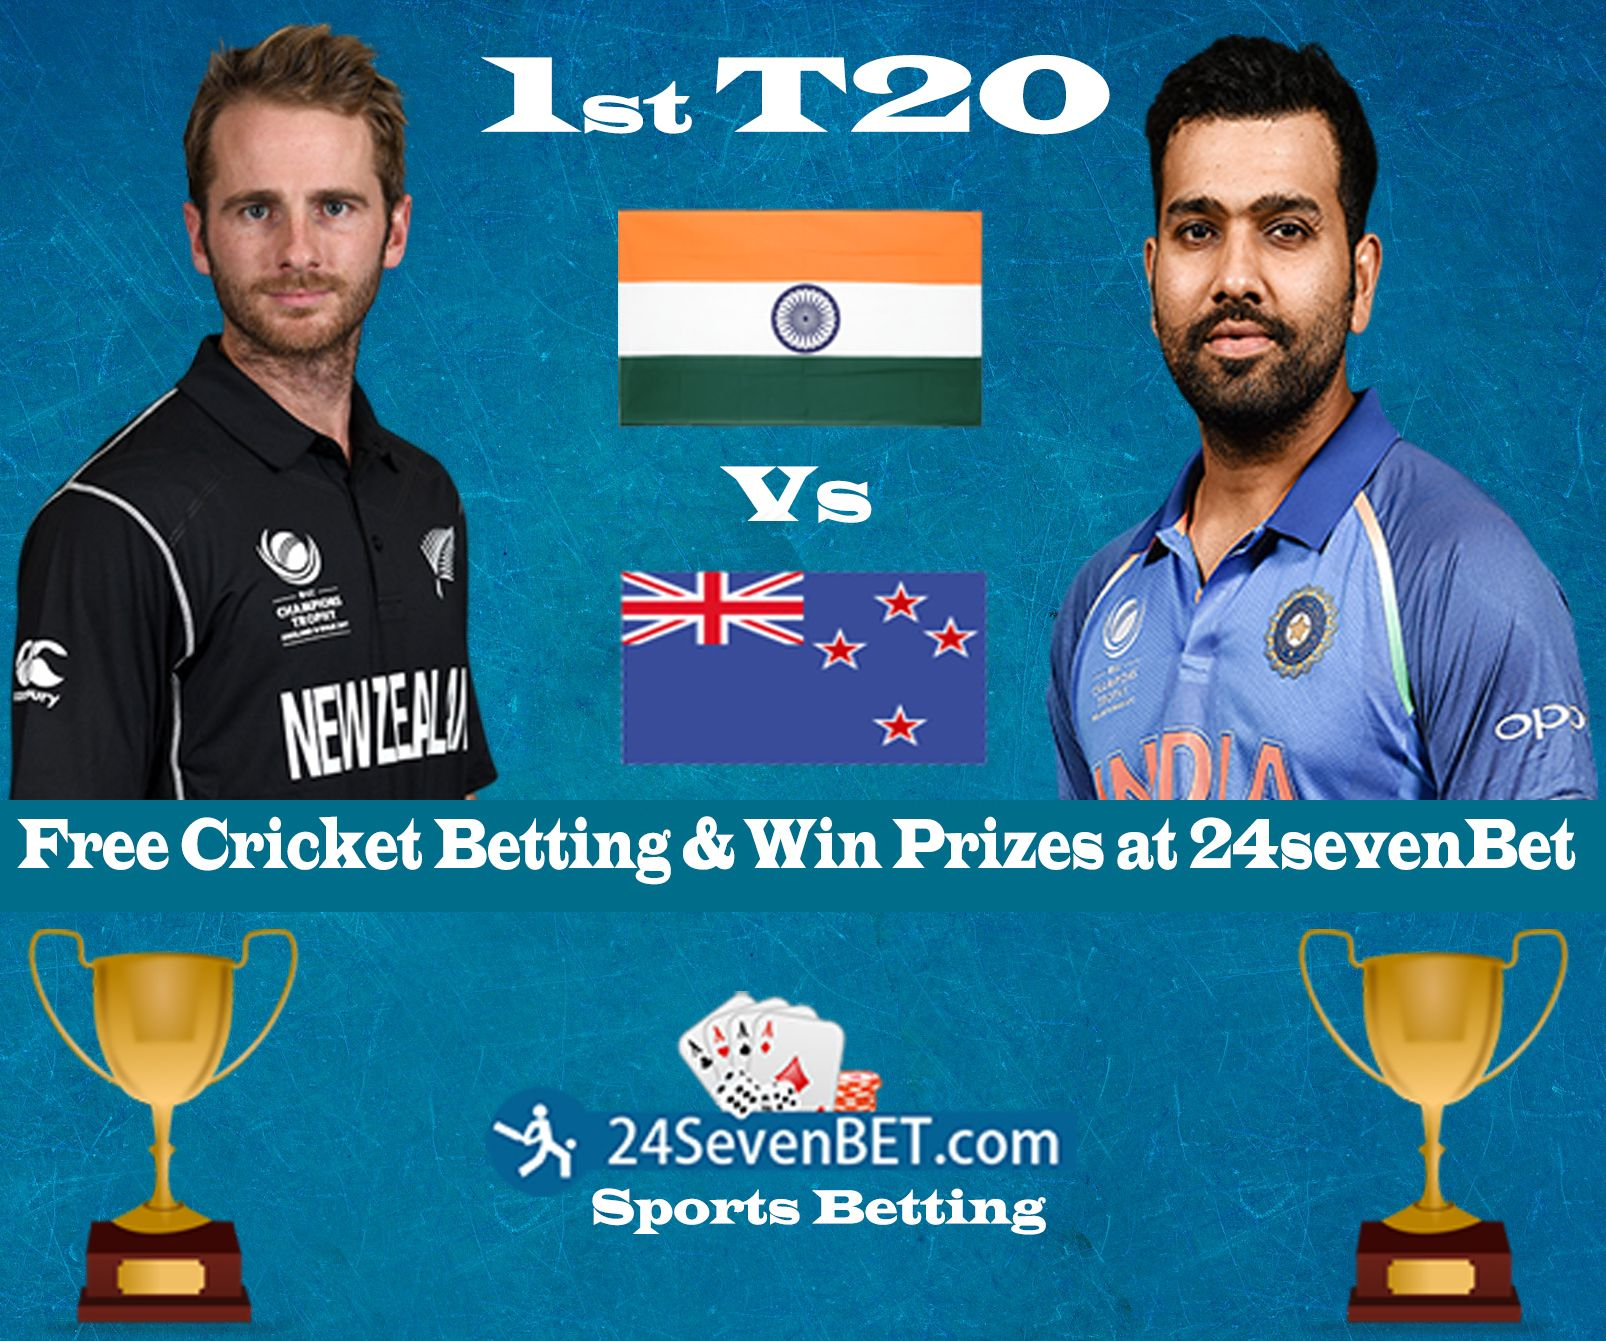 INDvsNZ 1st T20 Betting, Sports betting, Casino games